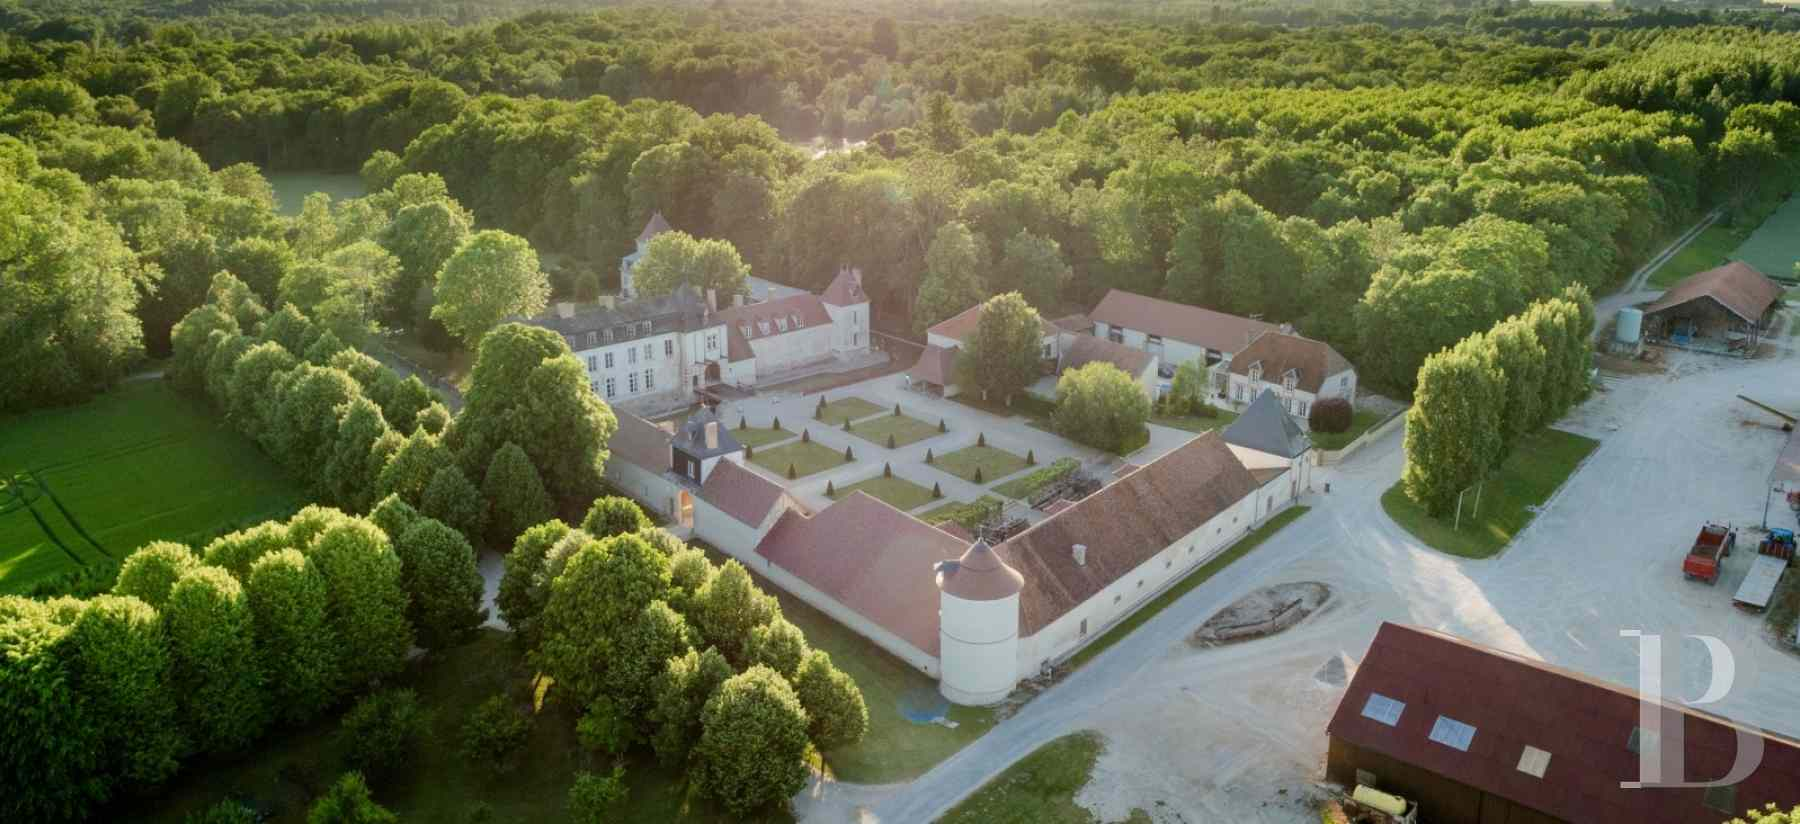 chateaux for sale France champagne ardennes 16th 18th - 4 zoom